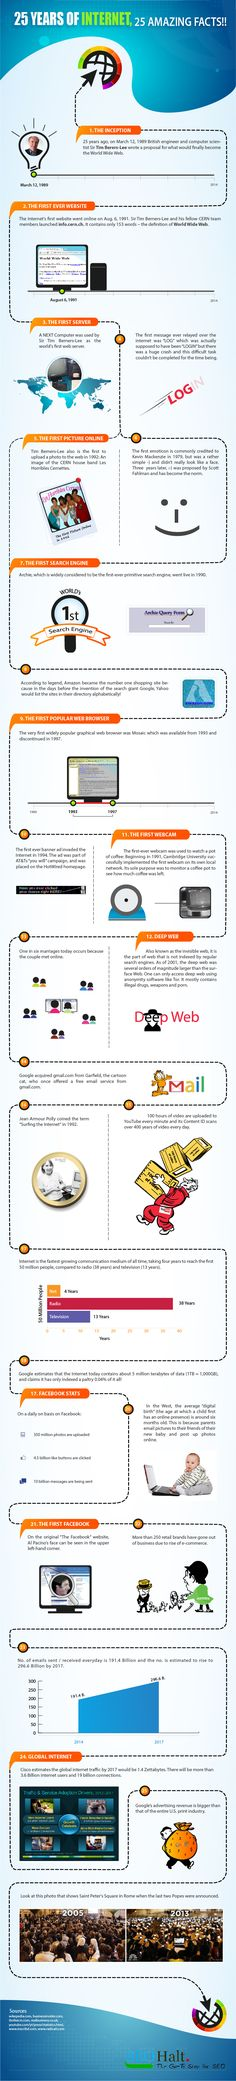 Trading & Currency infographic & data 25 Amazing Facts about the Internet . Infographic Description 25 Amazing Facts about the Internet Inbound Marketing, Online Marketing, Radios, Digital Customer Journey, Some Amazing Facts, Social Media Digital Marketing, Digital Literacy, Social Media Trends, Internet